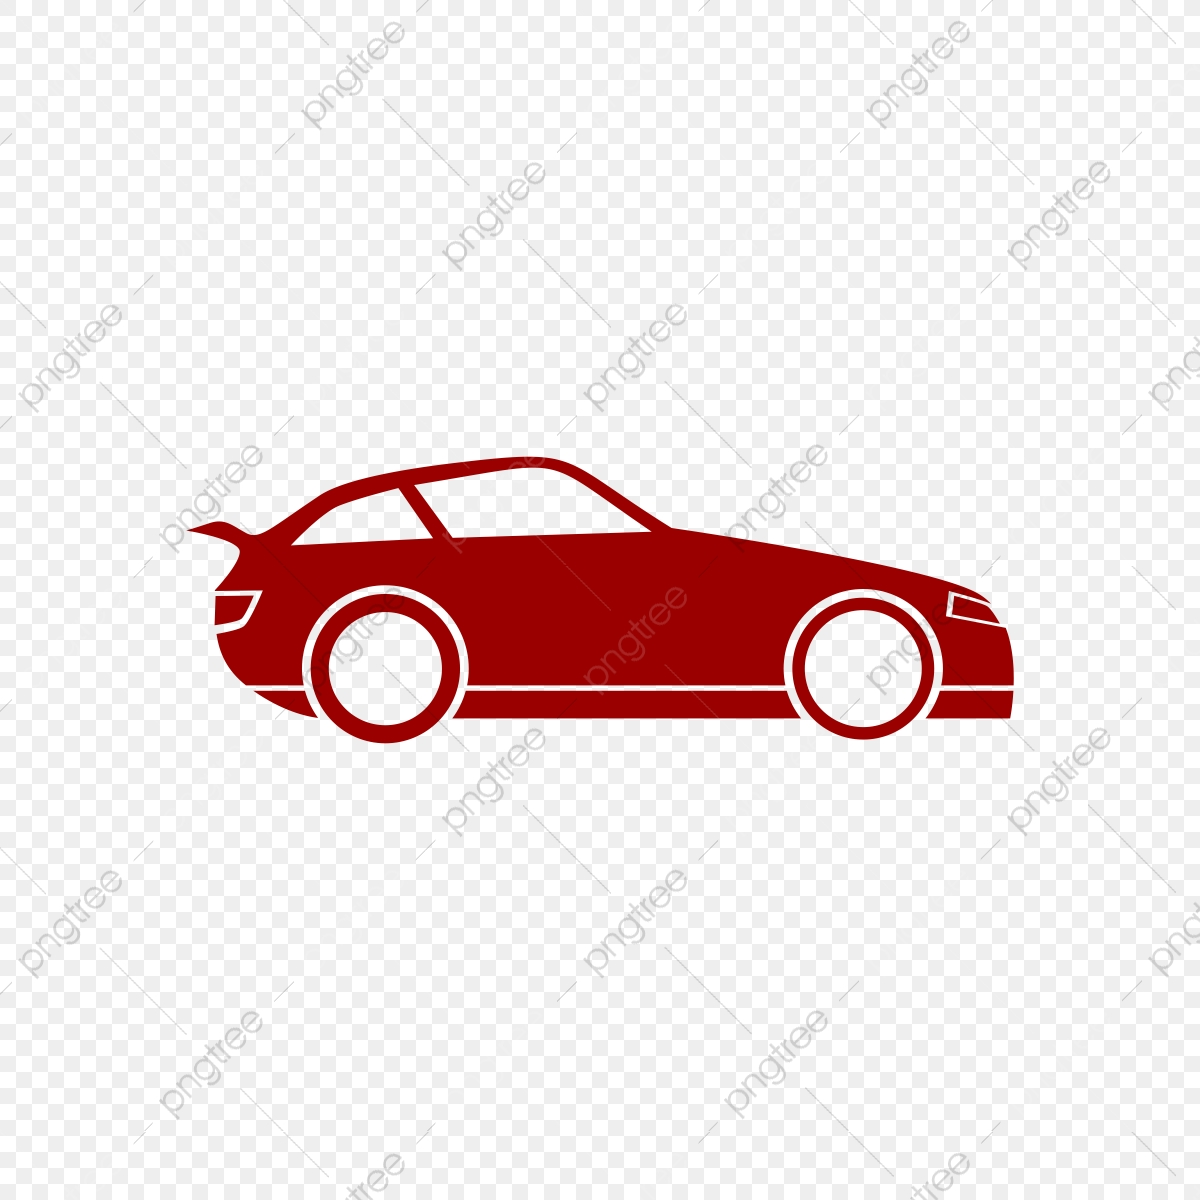 Sports Car Logo Design Car Icons Logo Icons Design Png And Vector With Transparent Background For Free Download